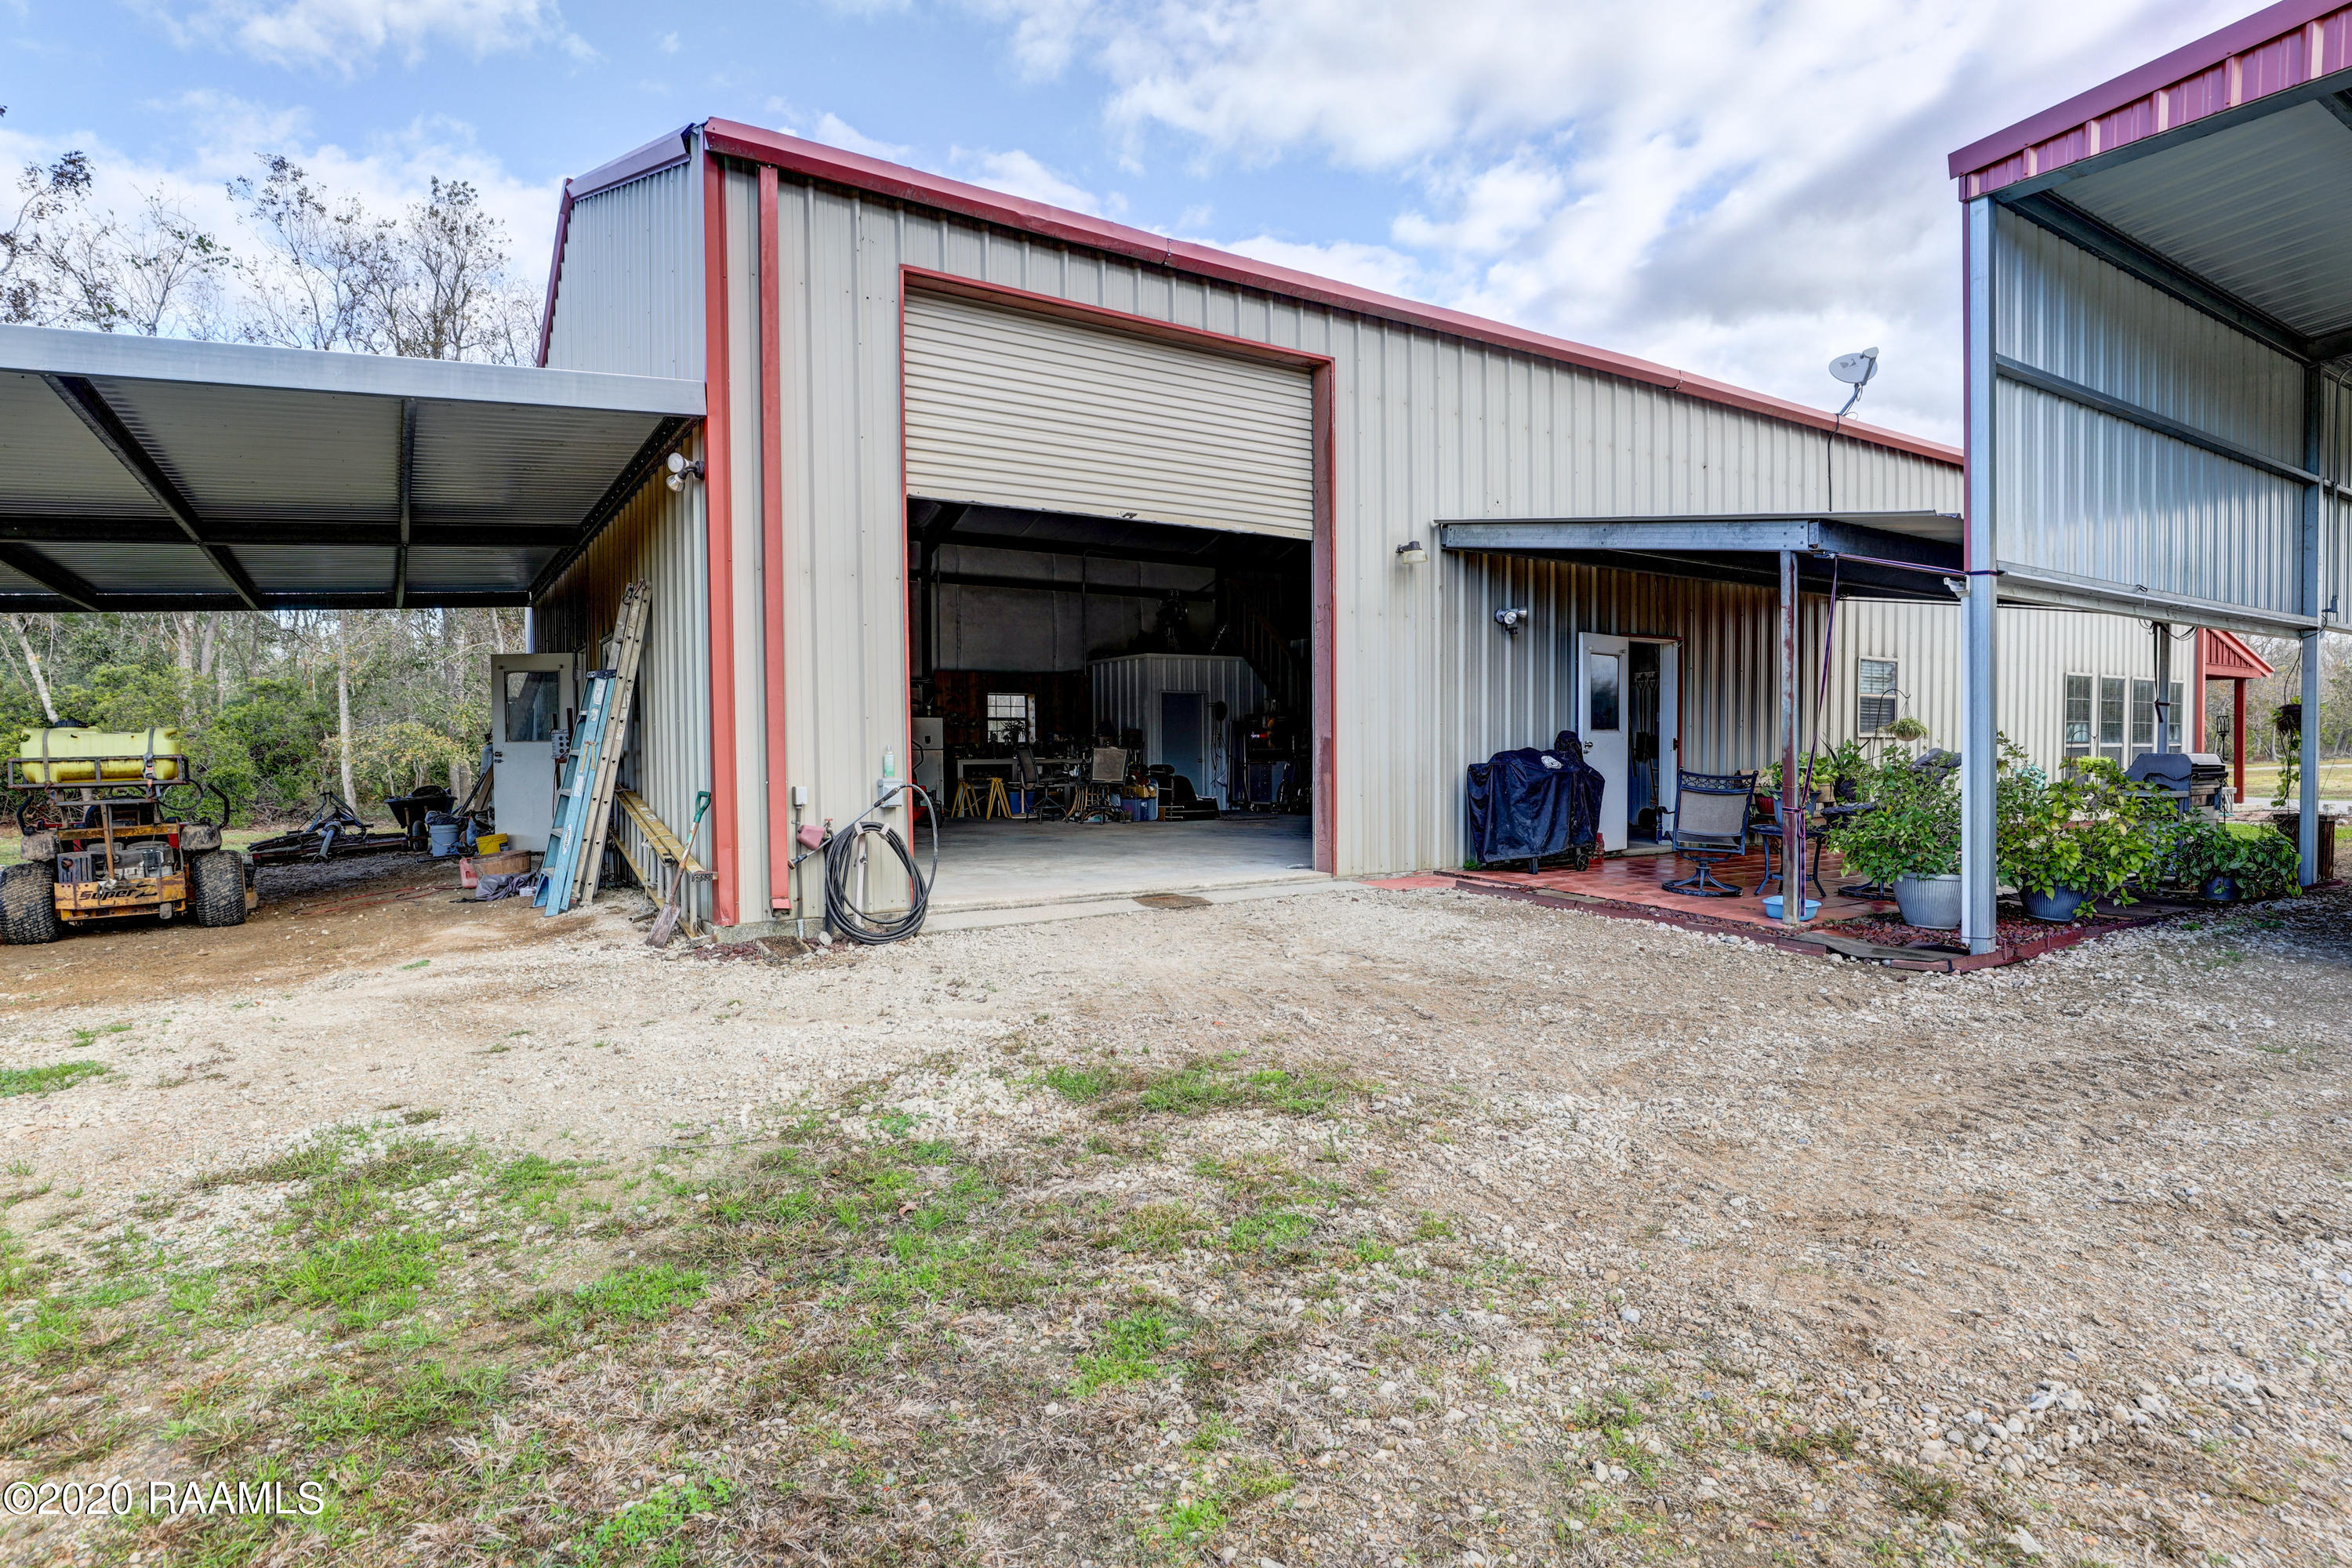 1138 Fontelieu Road, St. Martinville, LA 70582 Photo #21